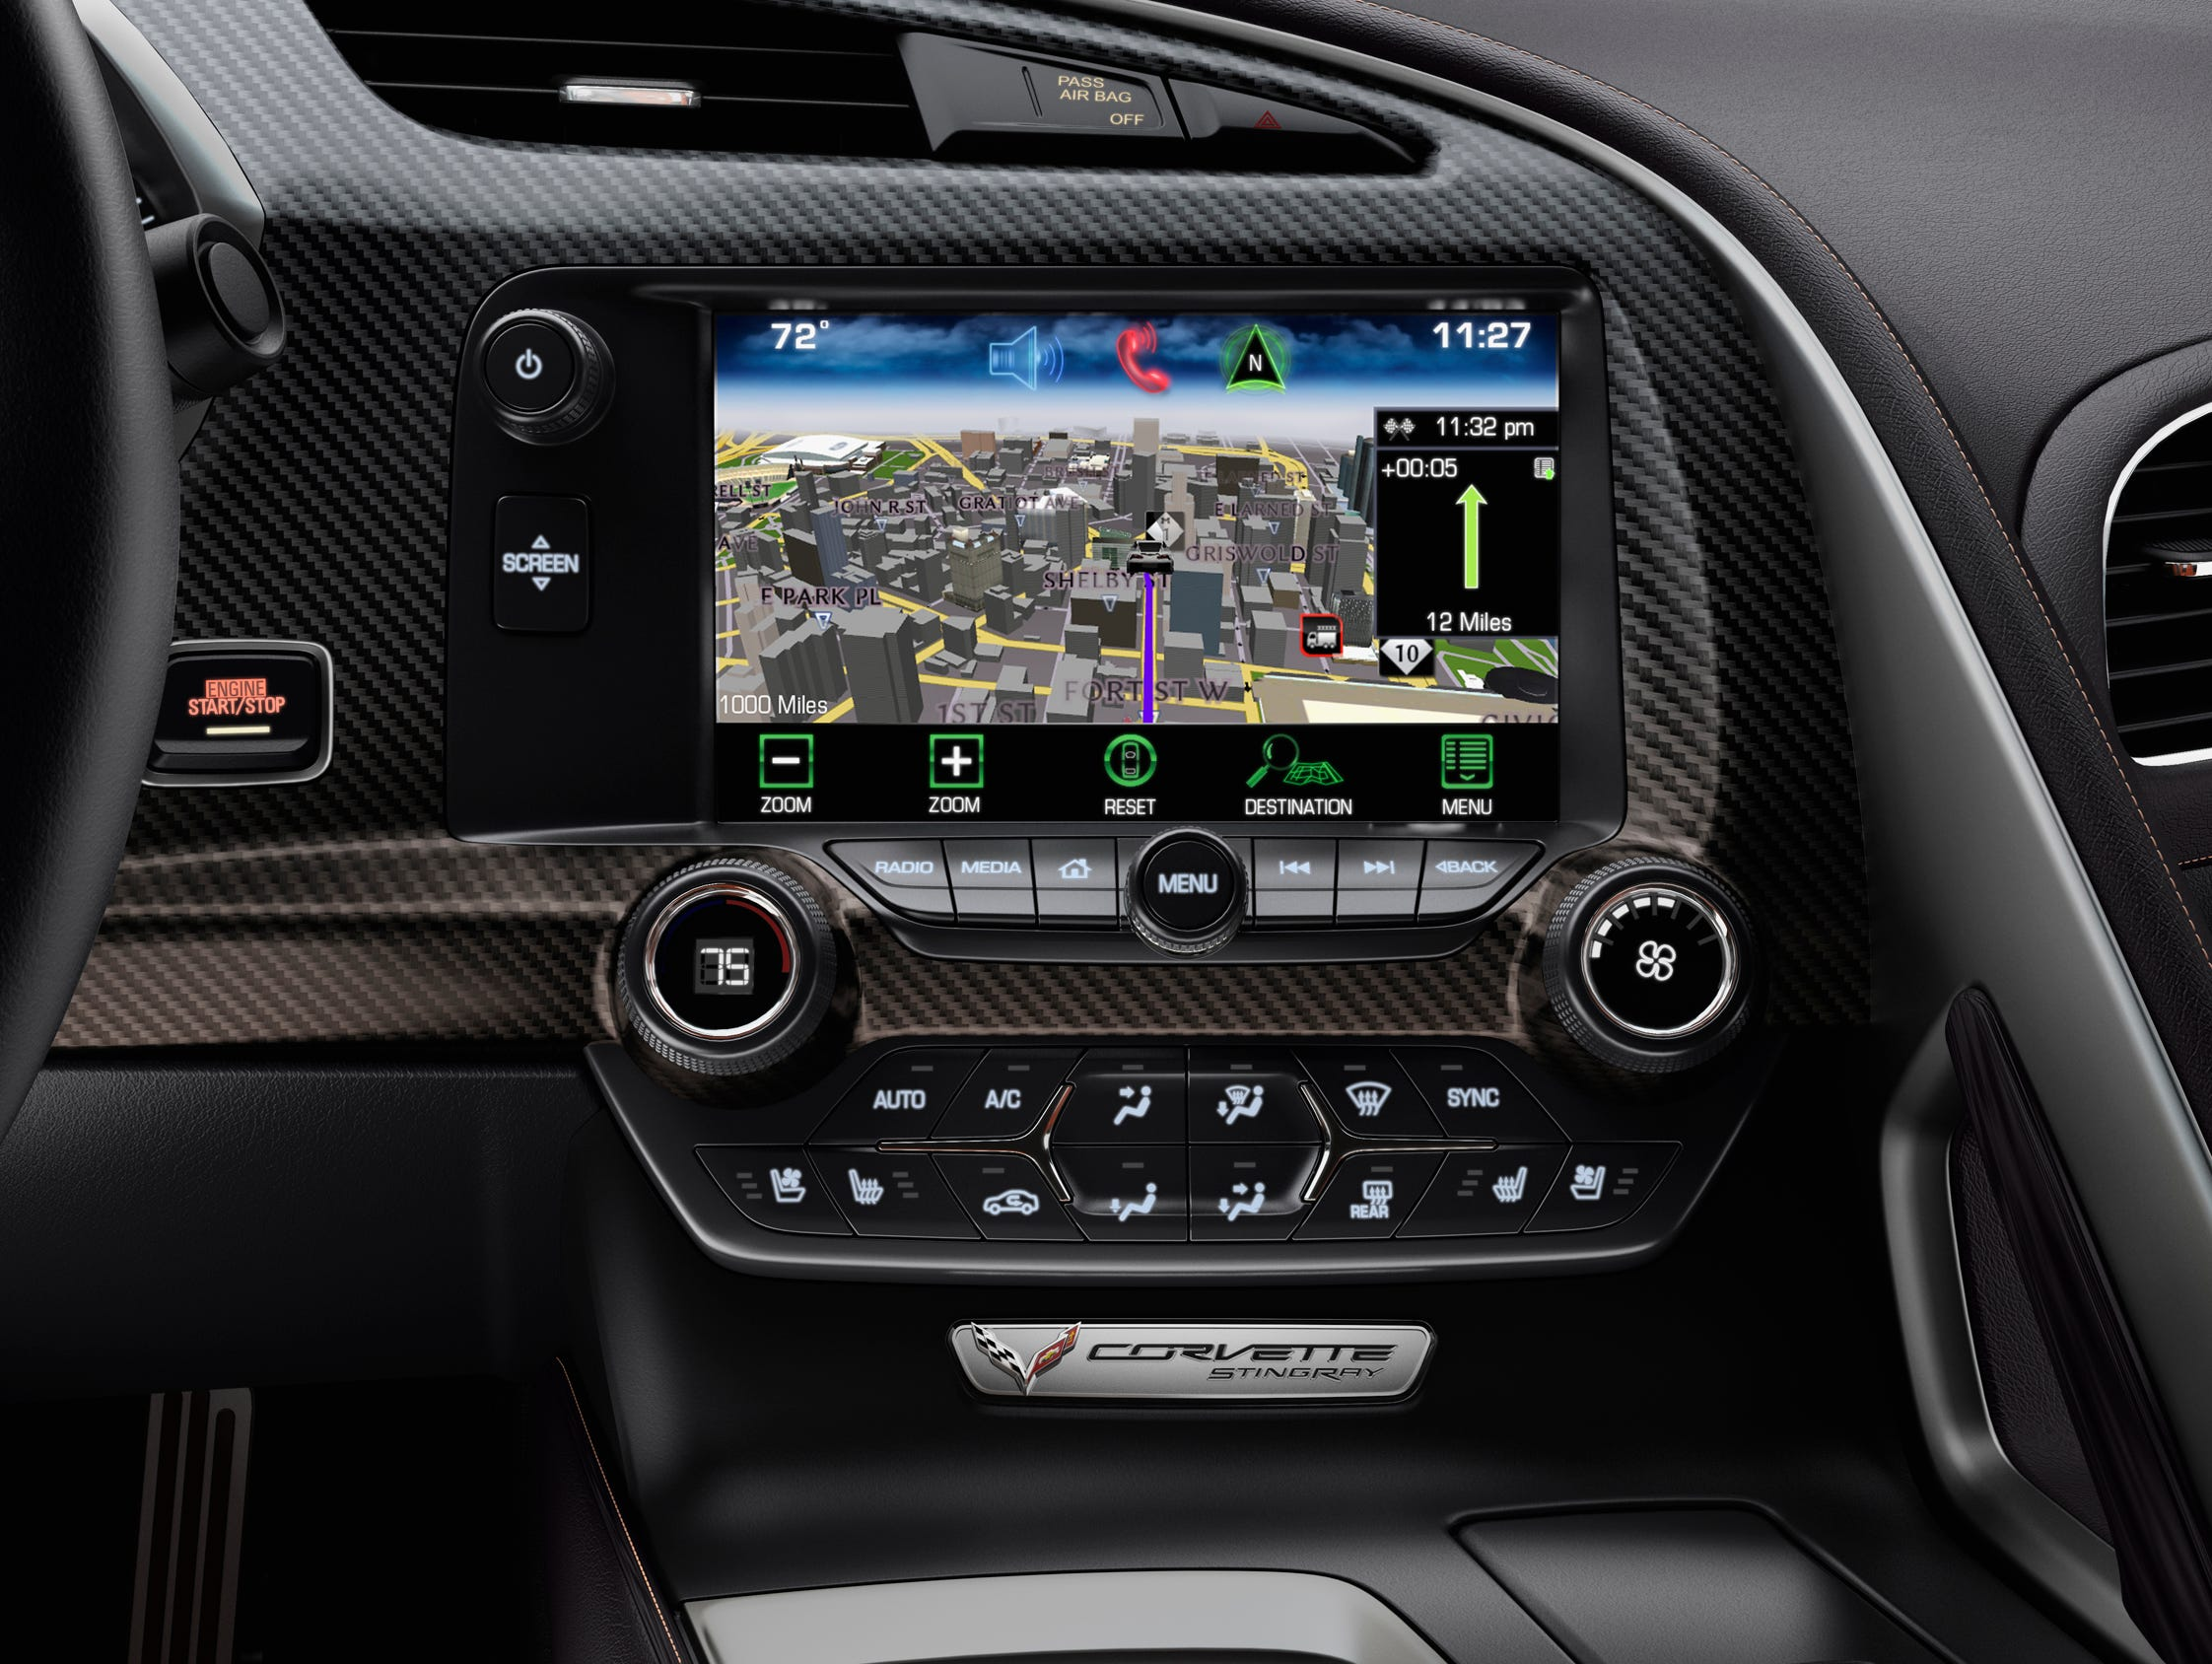 A separate large screen handles the 2014 Chevrolet Corvette Stingray's infotainment and control functions in the driver-centri cockpit.